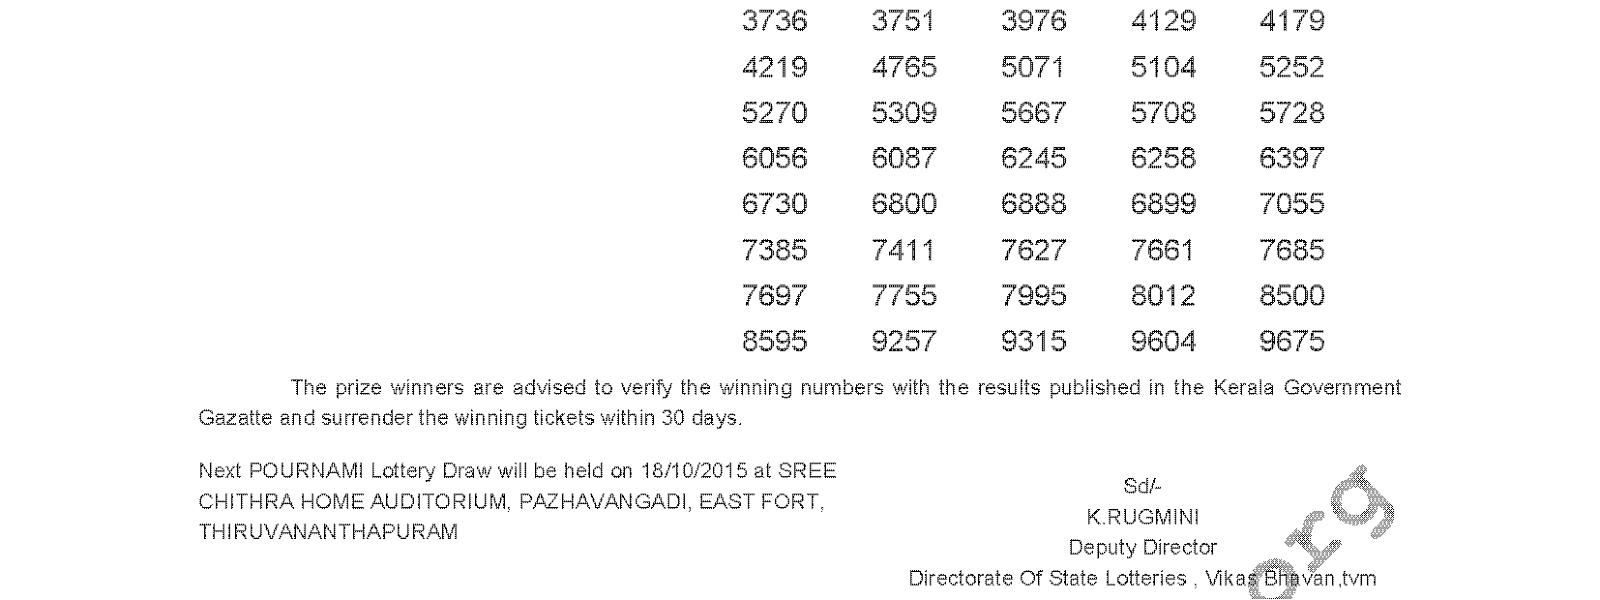 POURNAMI Lottery RN 206 Result 11-10-2015